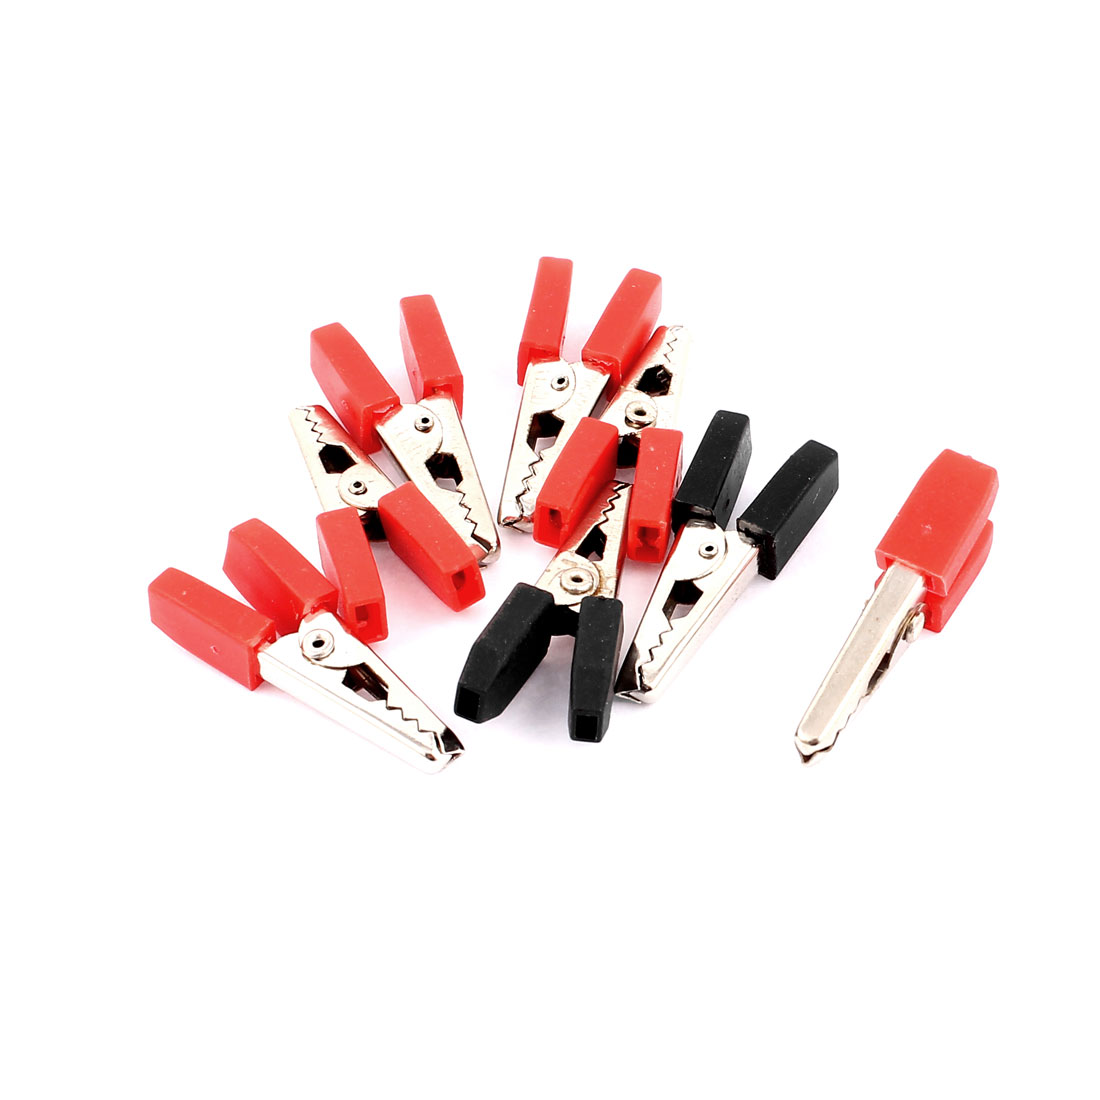 8 Pcs Insulated Finger Grip Crocodile Clips Black Red for Car Battery Test